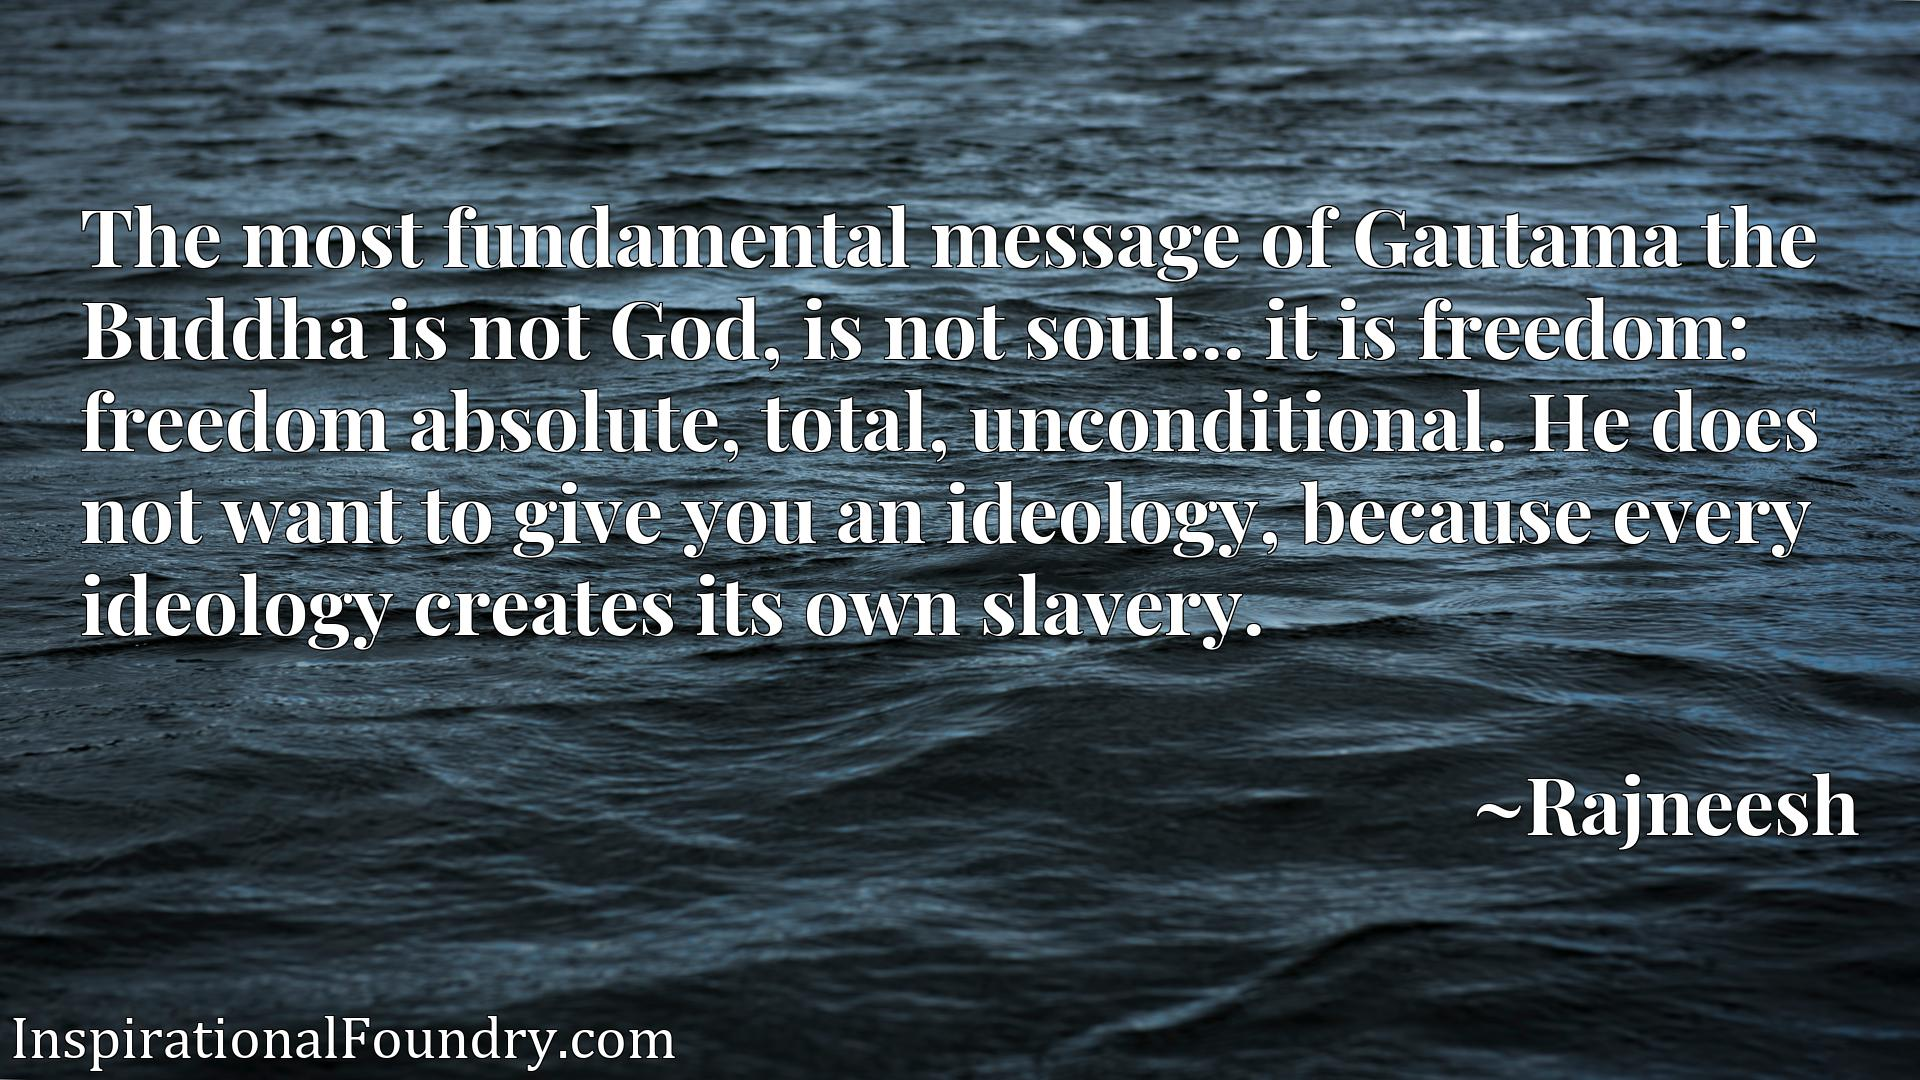 Quote Picture :The most fundamental message of Gautama the Buddha is not God, is not soul... it is freedom: freedom absolute, total, unconditional. He does not want to give you an ideology, because every ideology creates its own slavery.